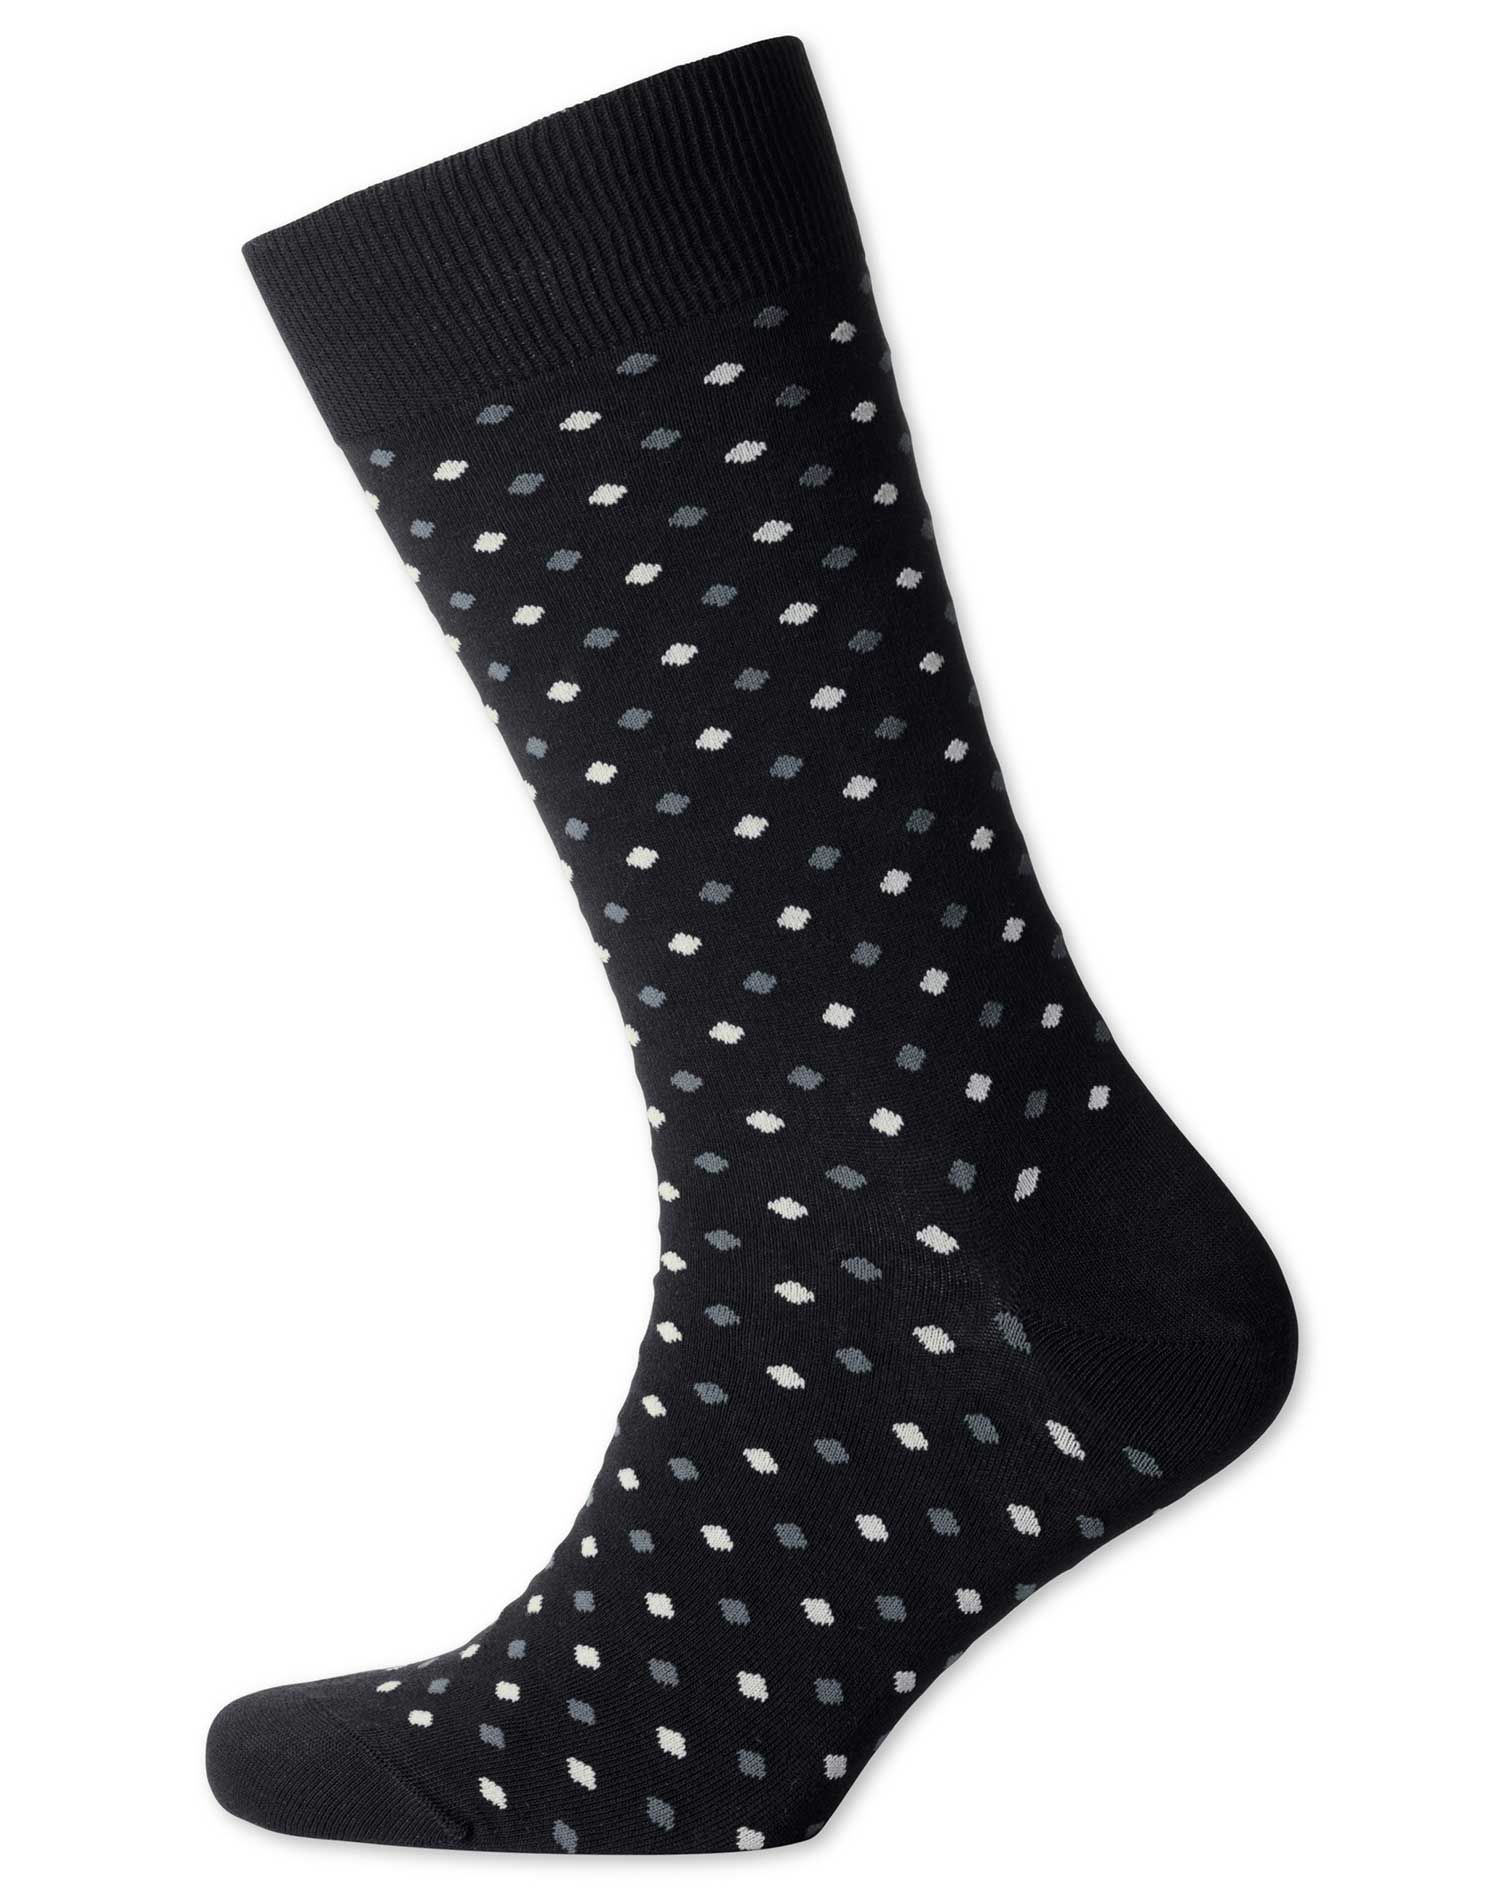 Black Small Spot Socks Size Medium by Charles Tyrwhitt